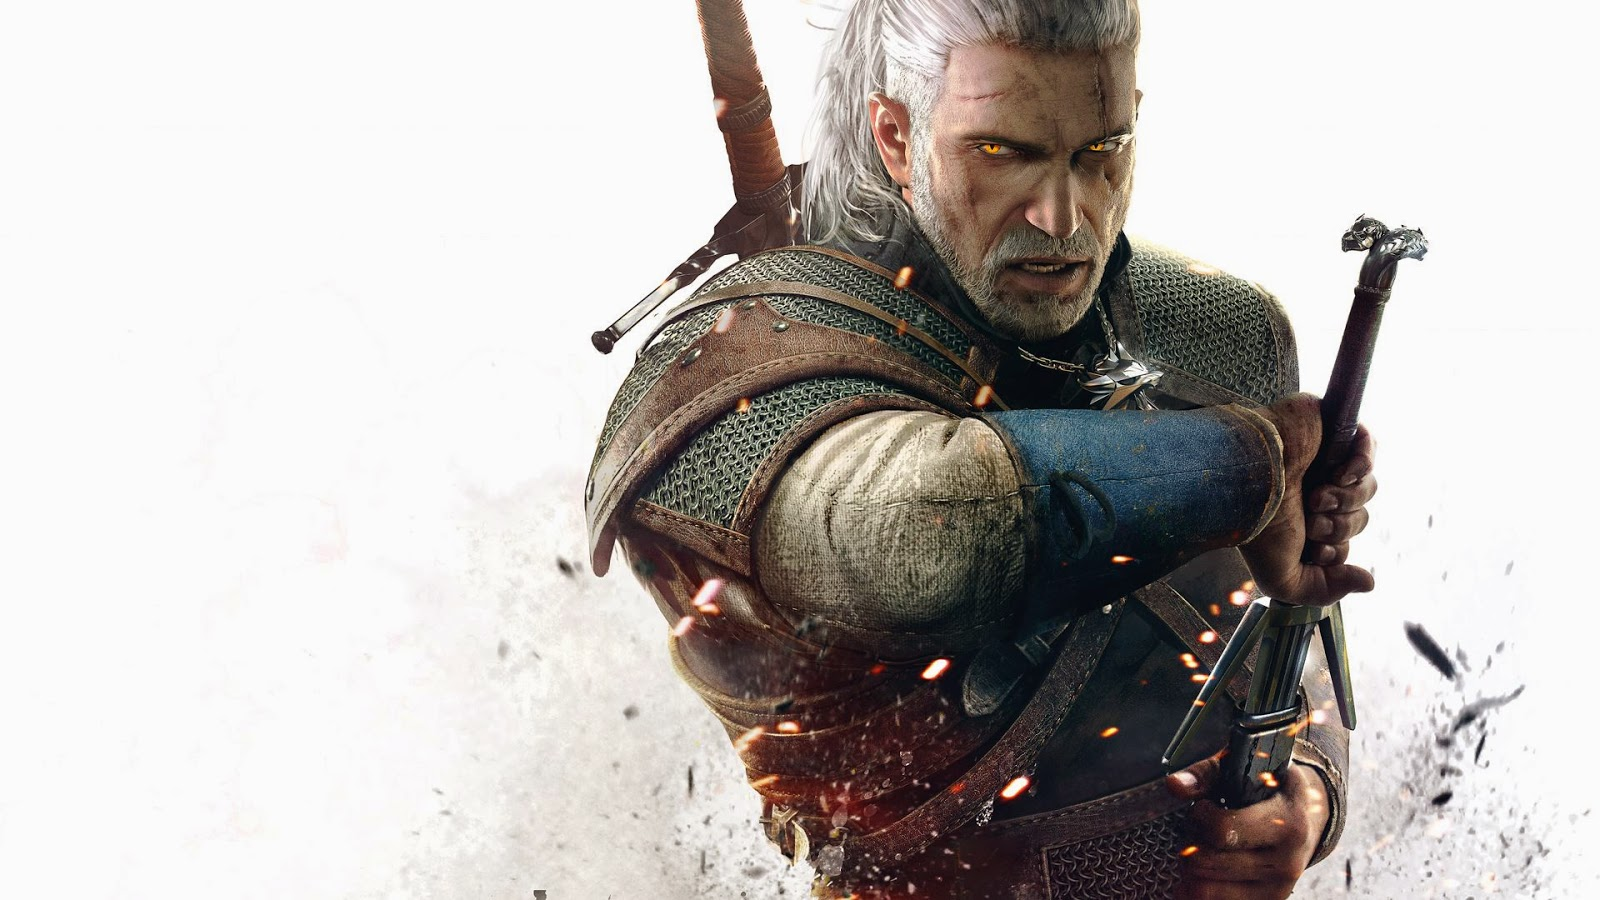 http://psgamespower.blogspot.com/2015/01/the-witcher-3-wild-hunt-descubram.html